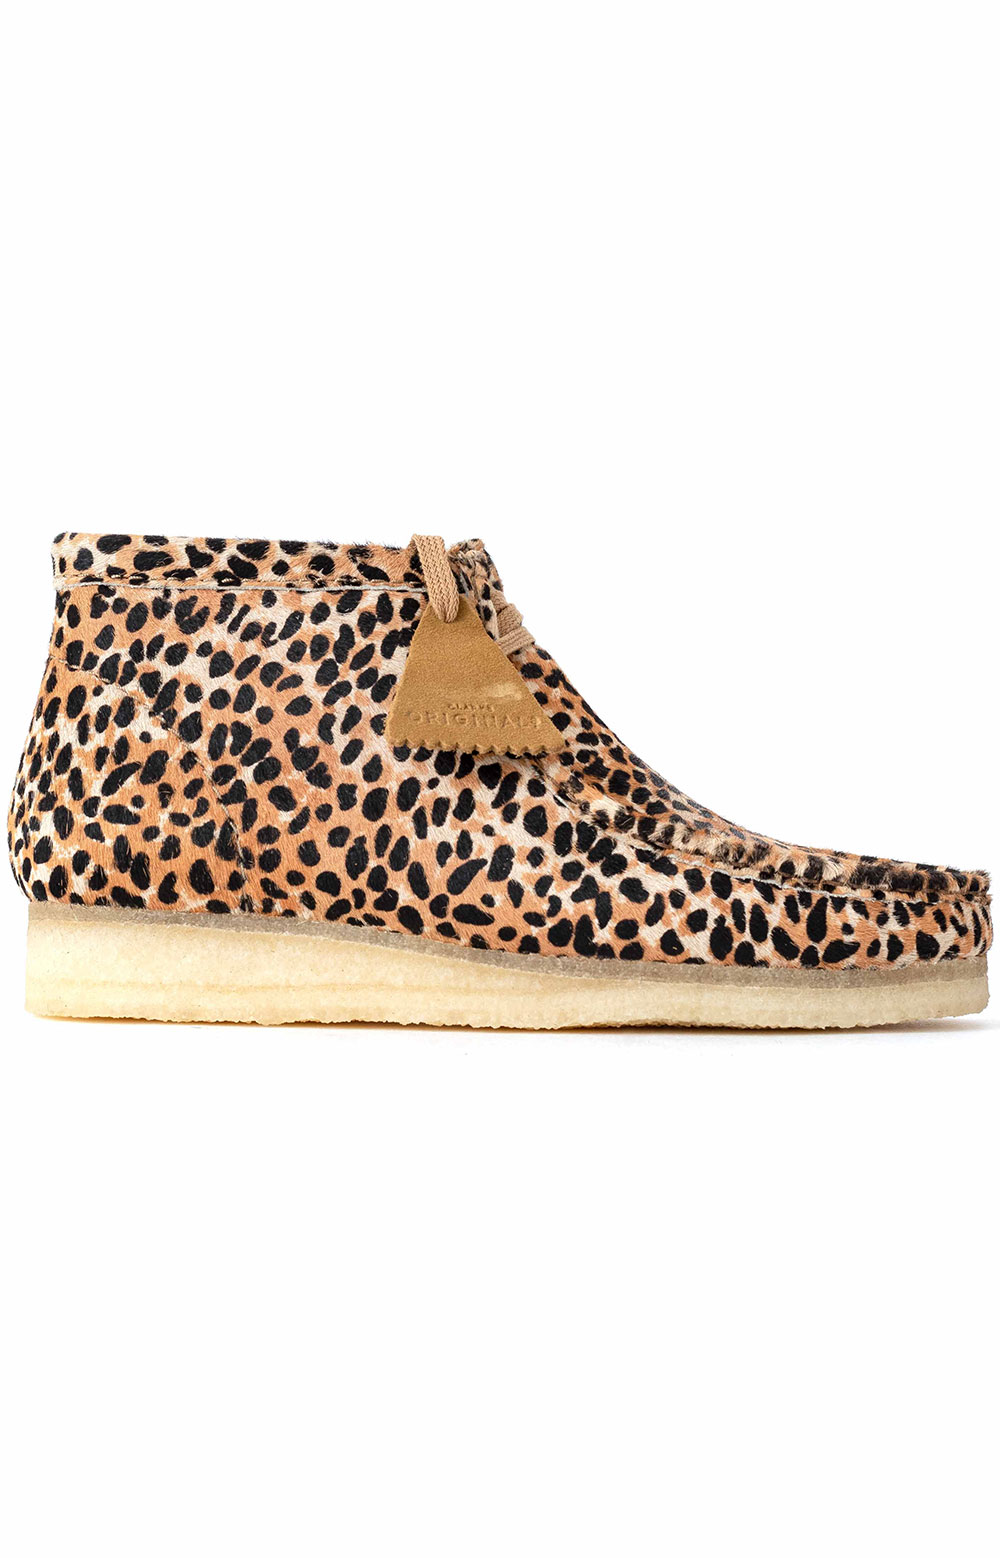 (26146756) Wallabee Boot - Brown Animal Print